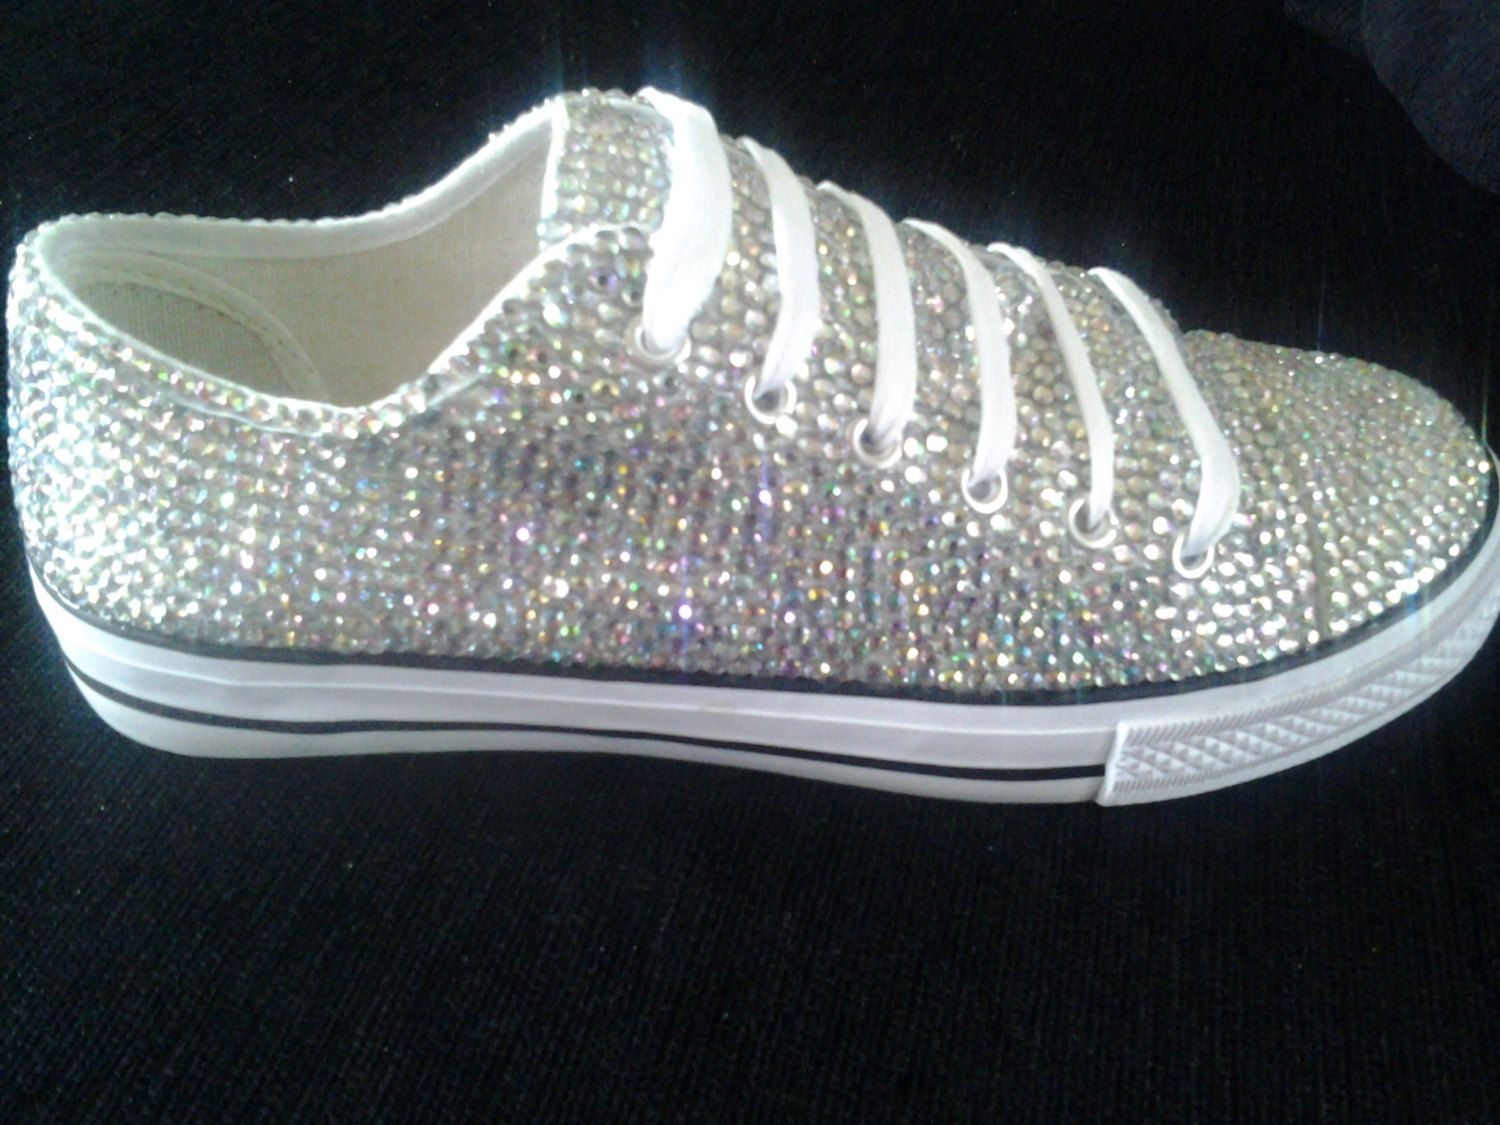 Crystal embellished pumps NOT converse vans. by